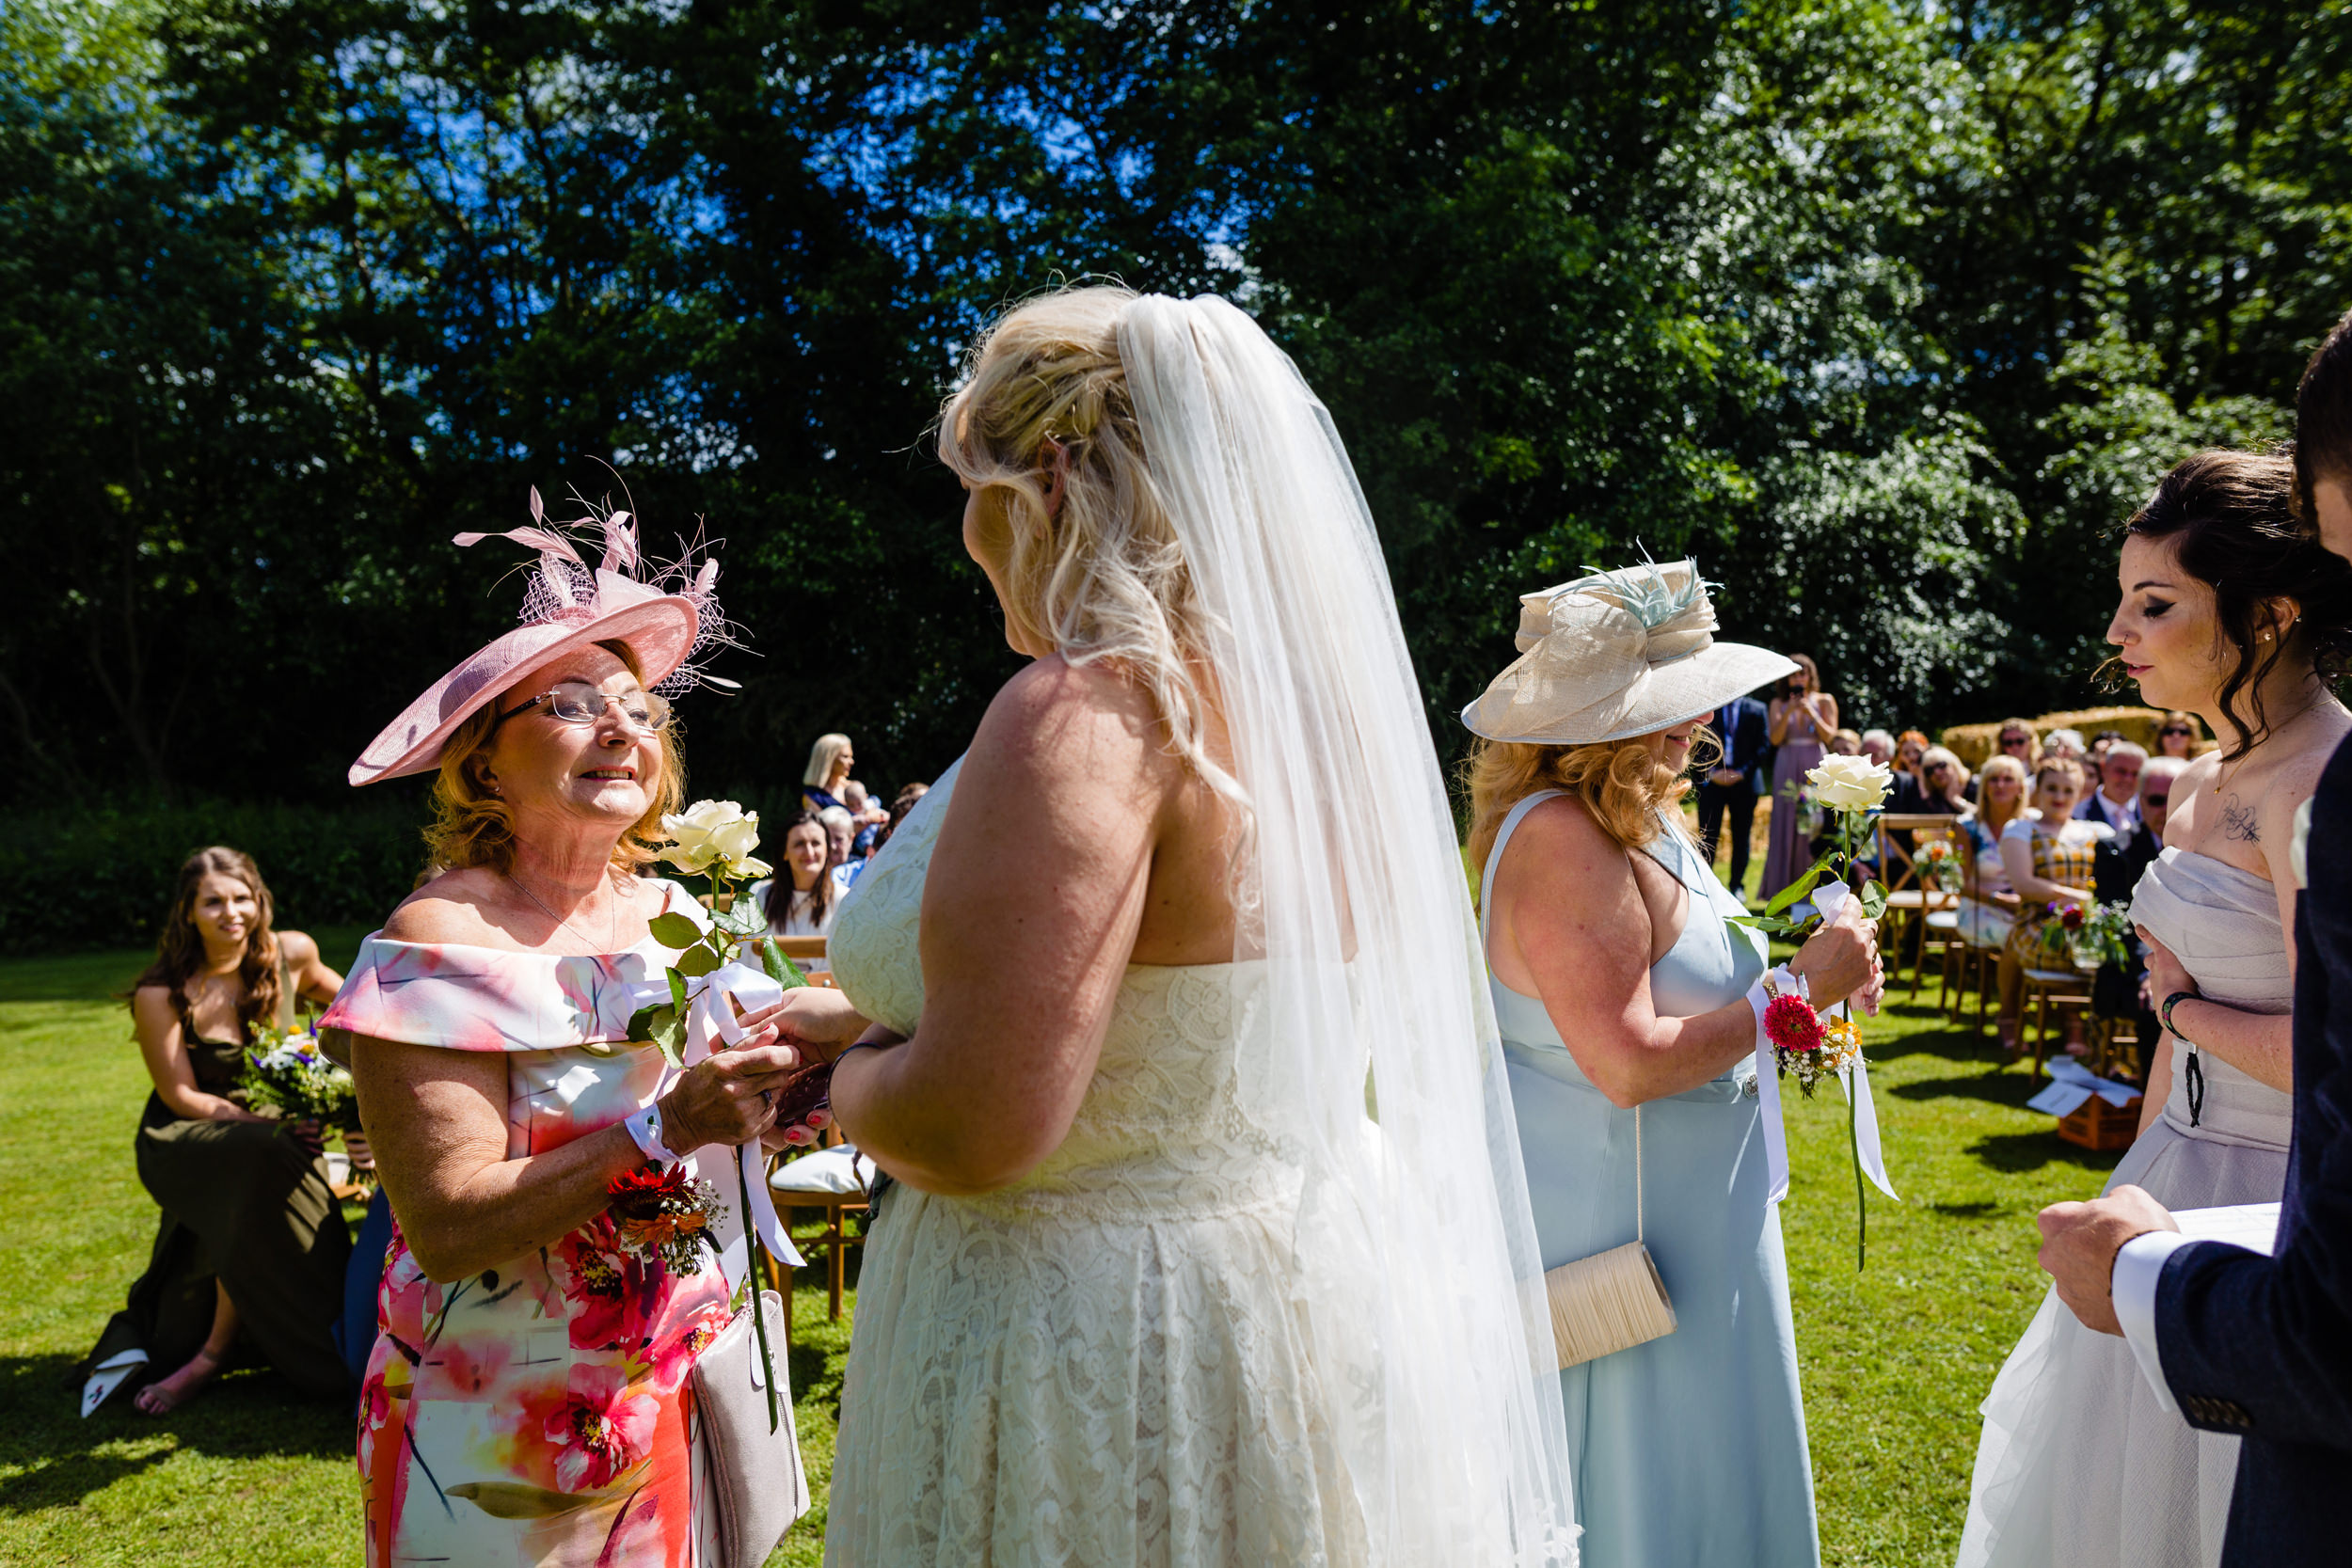 brides give roses to their mothers during wedding ceremony. plough inn, hathersage wedding photography by emma and rich.